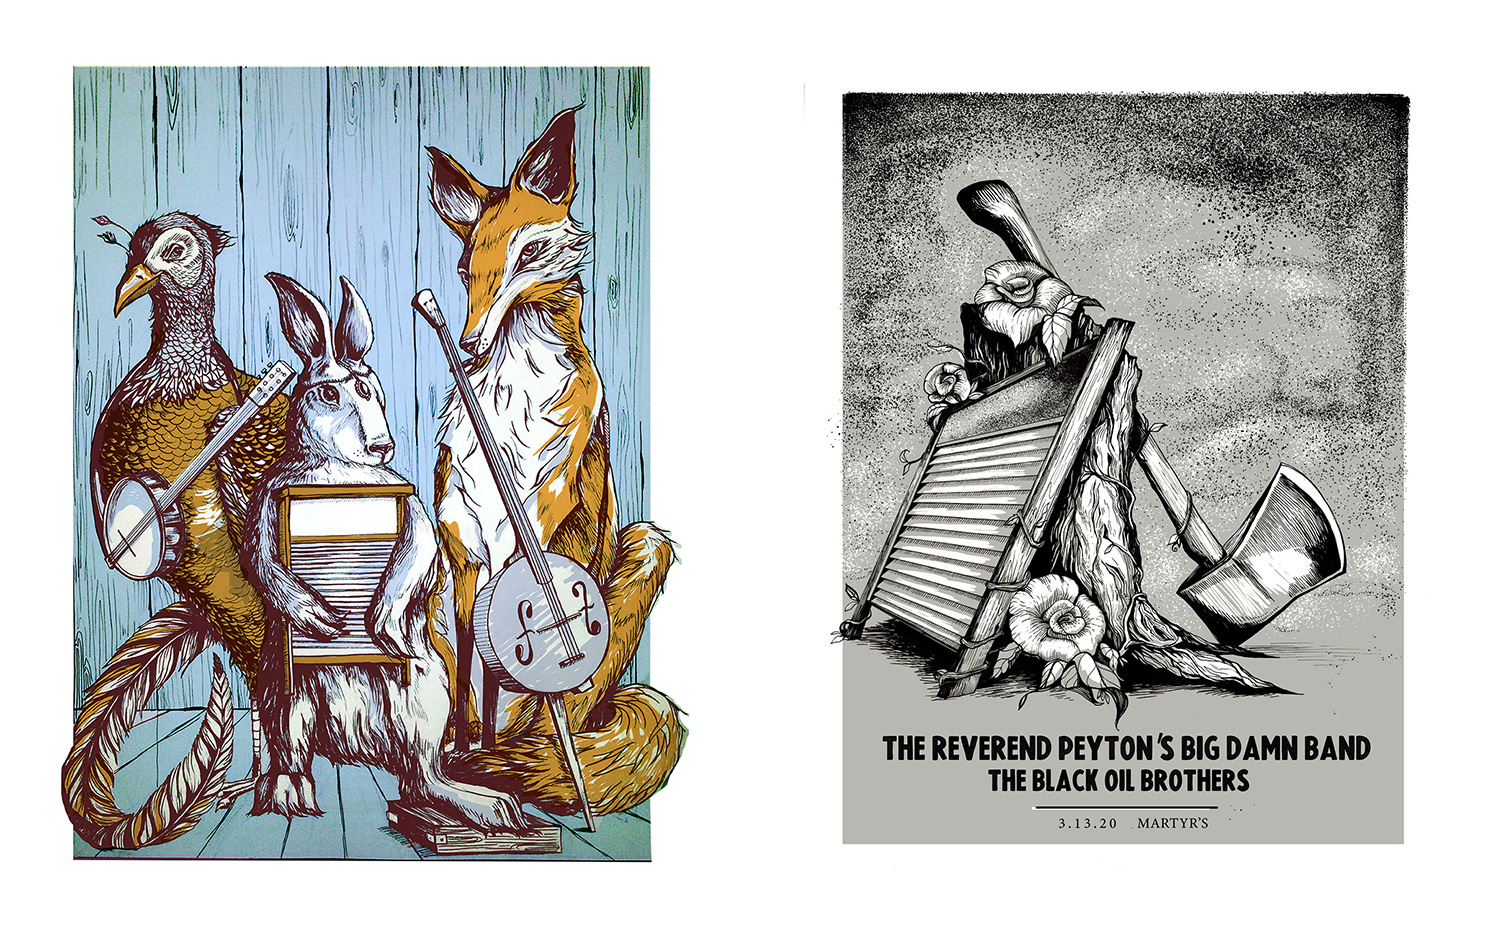 Two poster designs by screen printer Alexandrea Pataky. The poster on the left contains a bird, a rabbit, and a fox all holding instruments. The poster on the right is an illustrated gig poster for The Reverend Peyton's Big Damn Band.